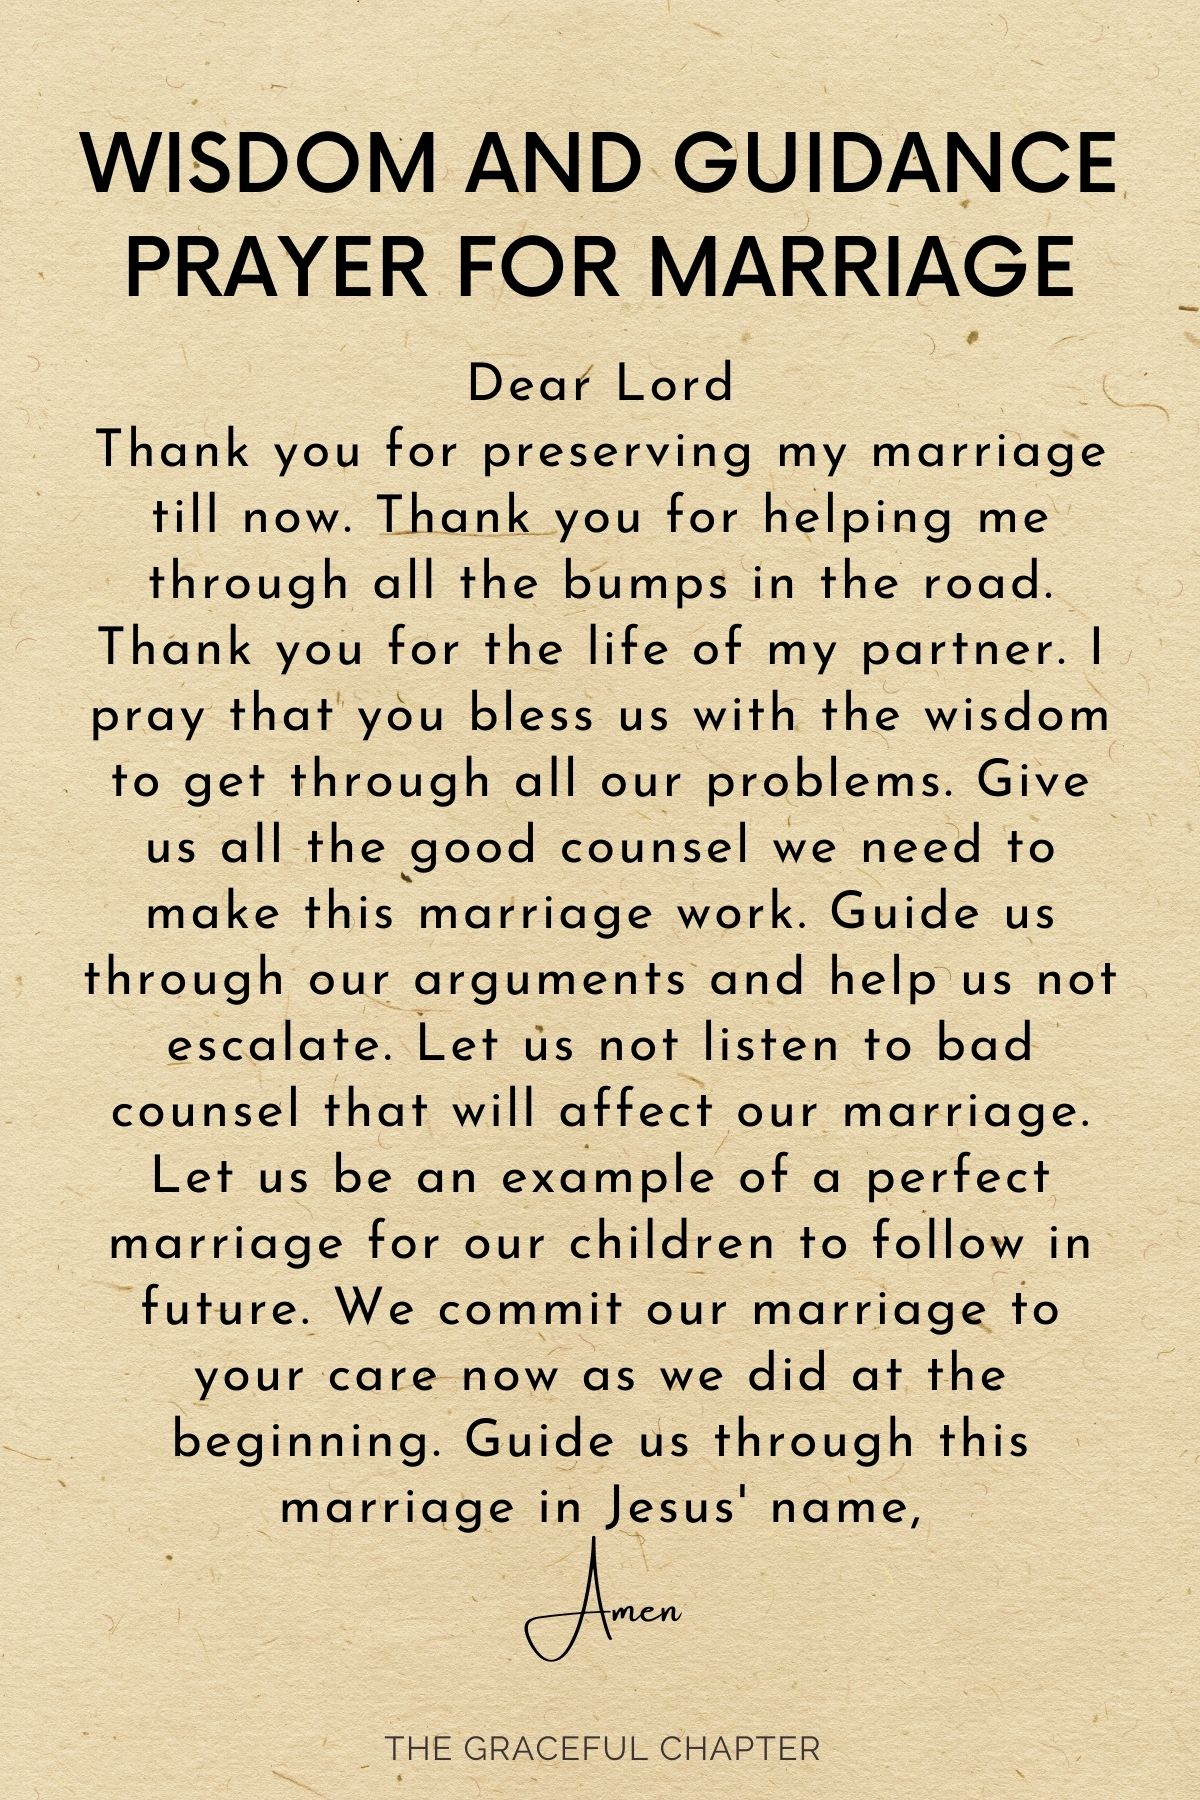 Wisdom and guidance for marriage